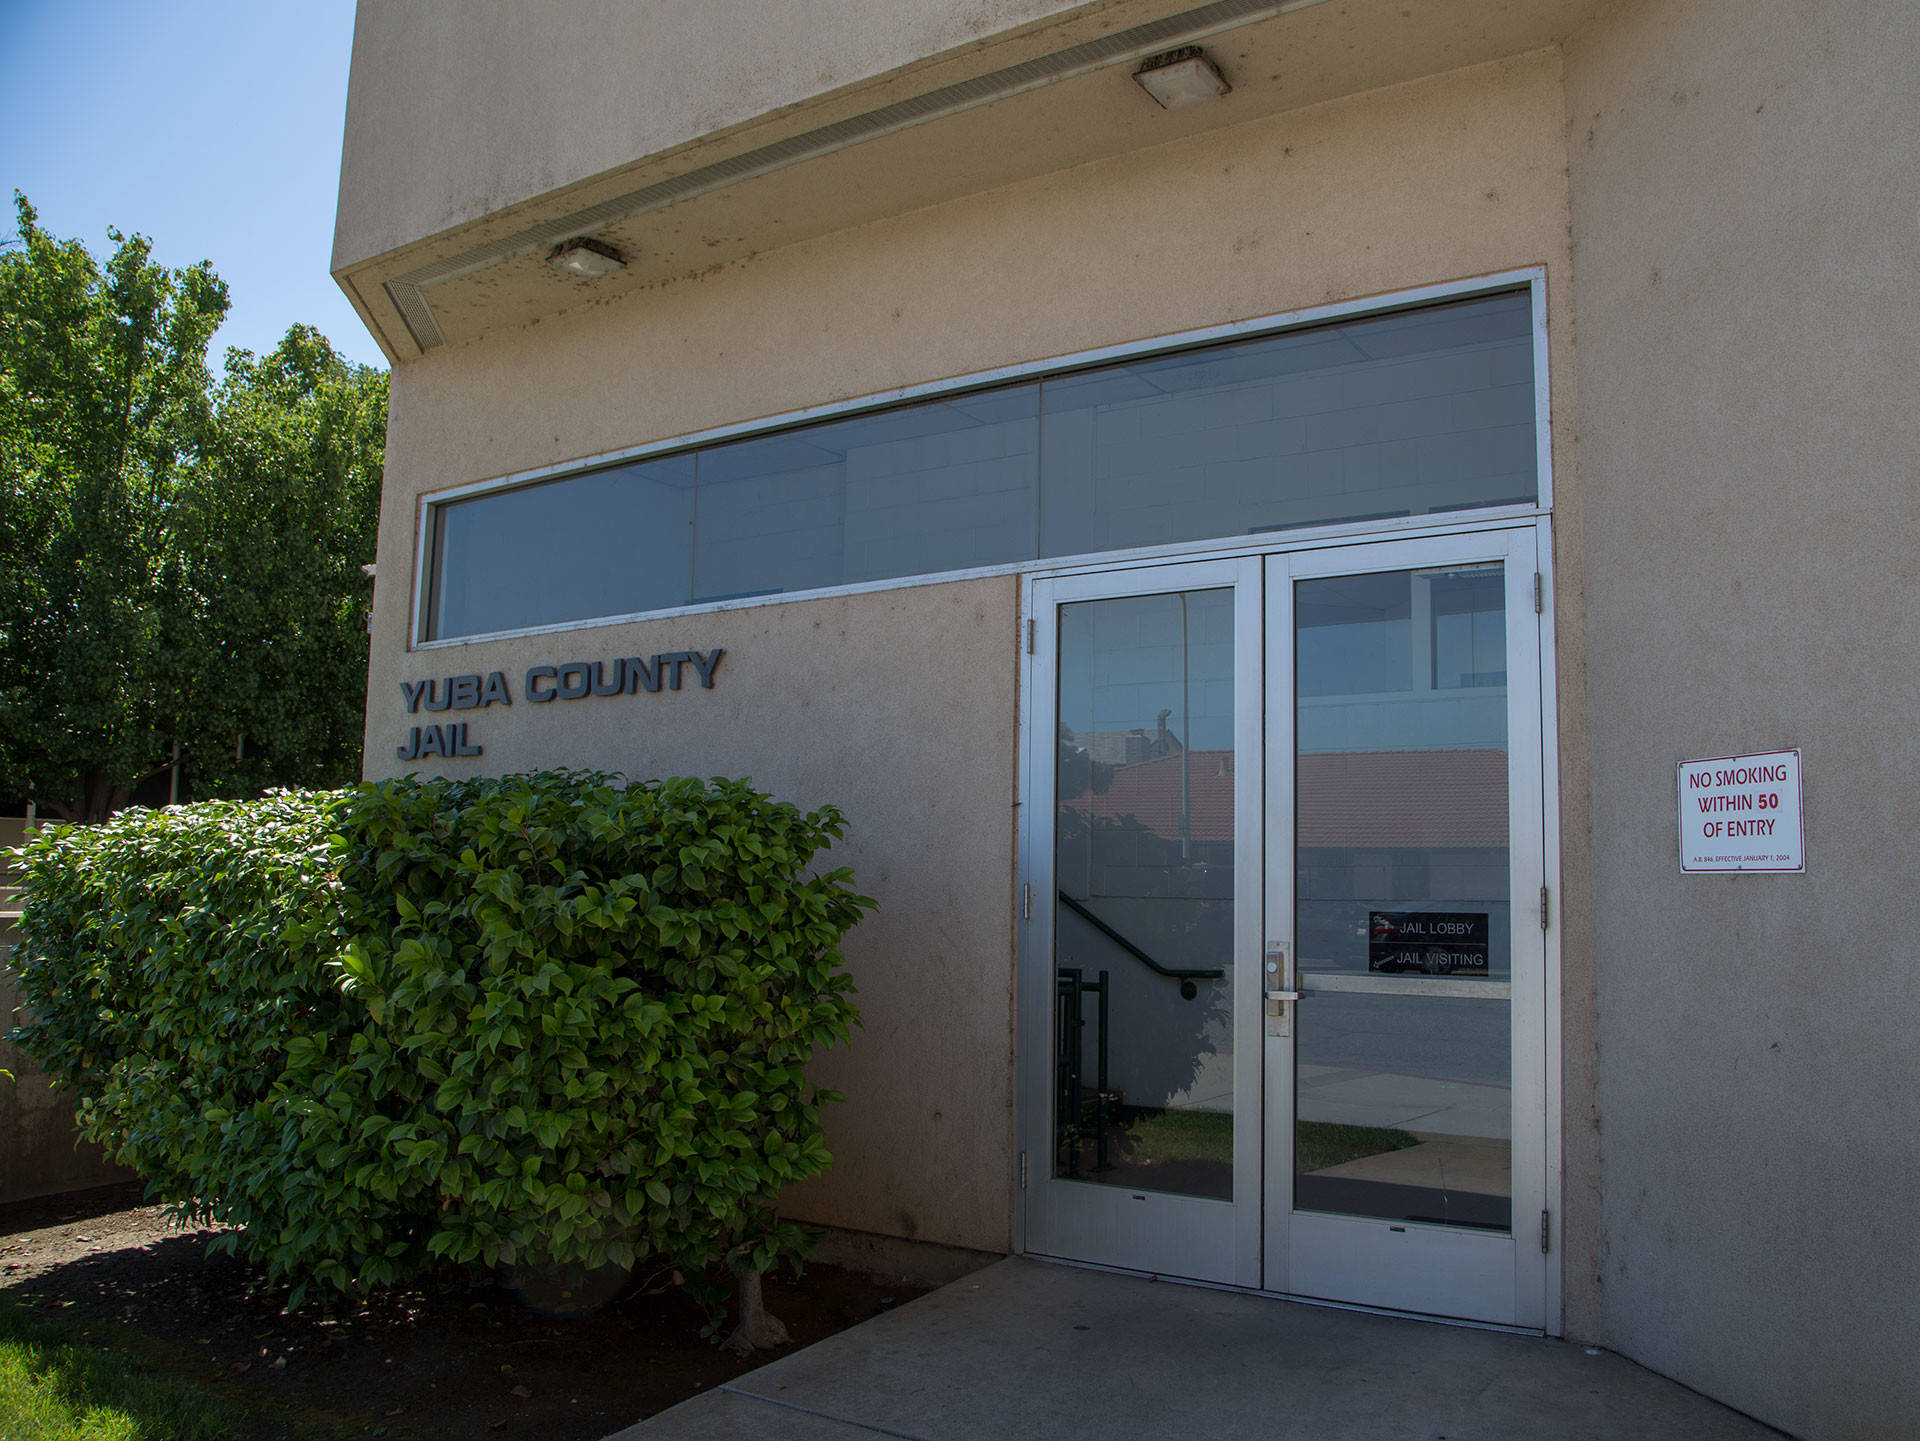 ICE Detainees Cease Hunger Strike at Yuba County Jail After